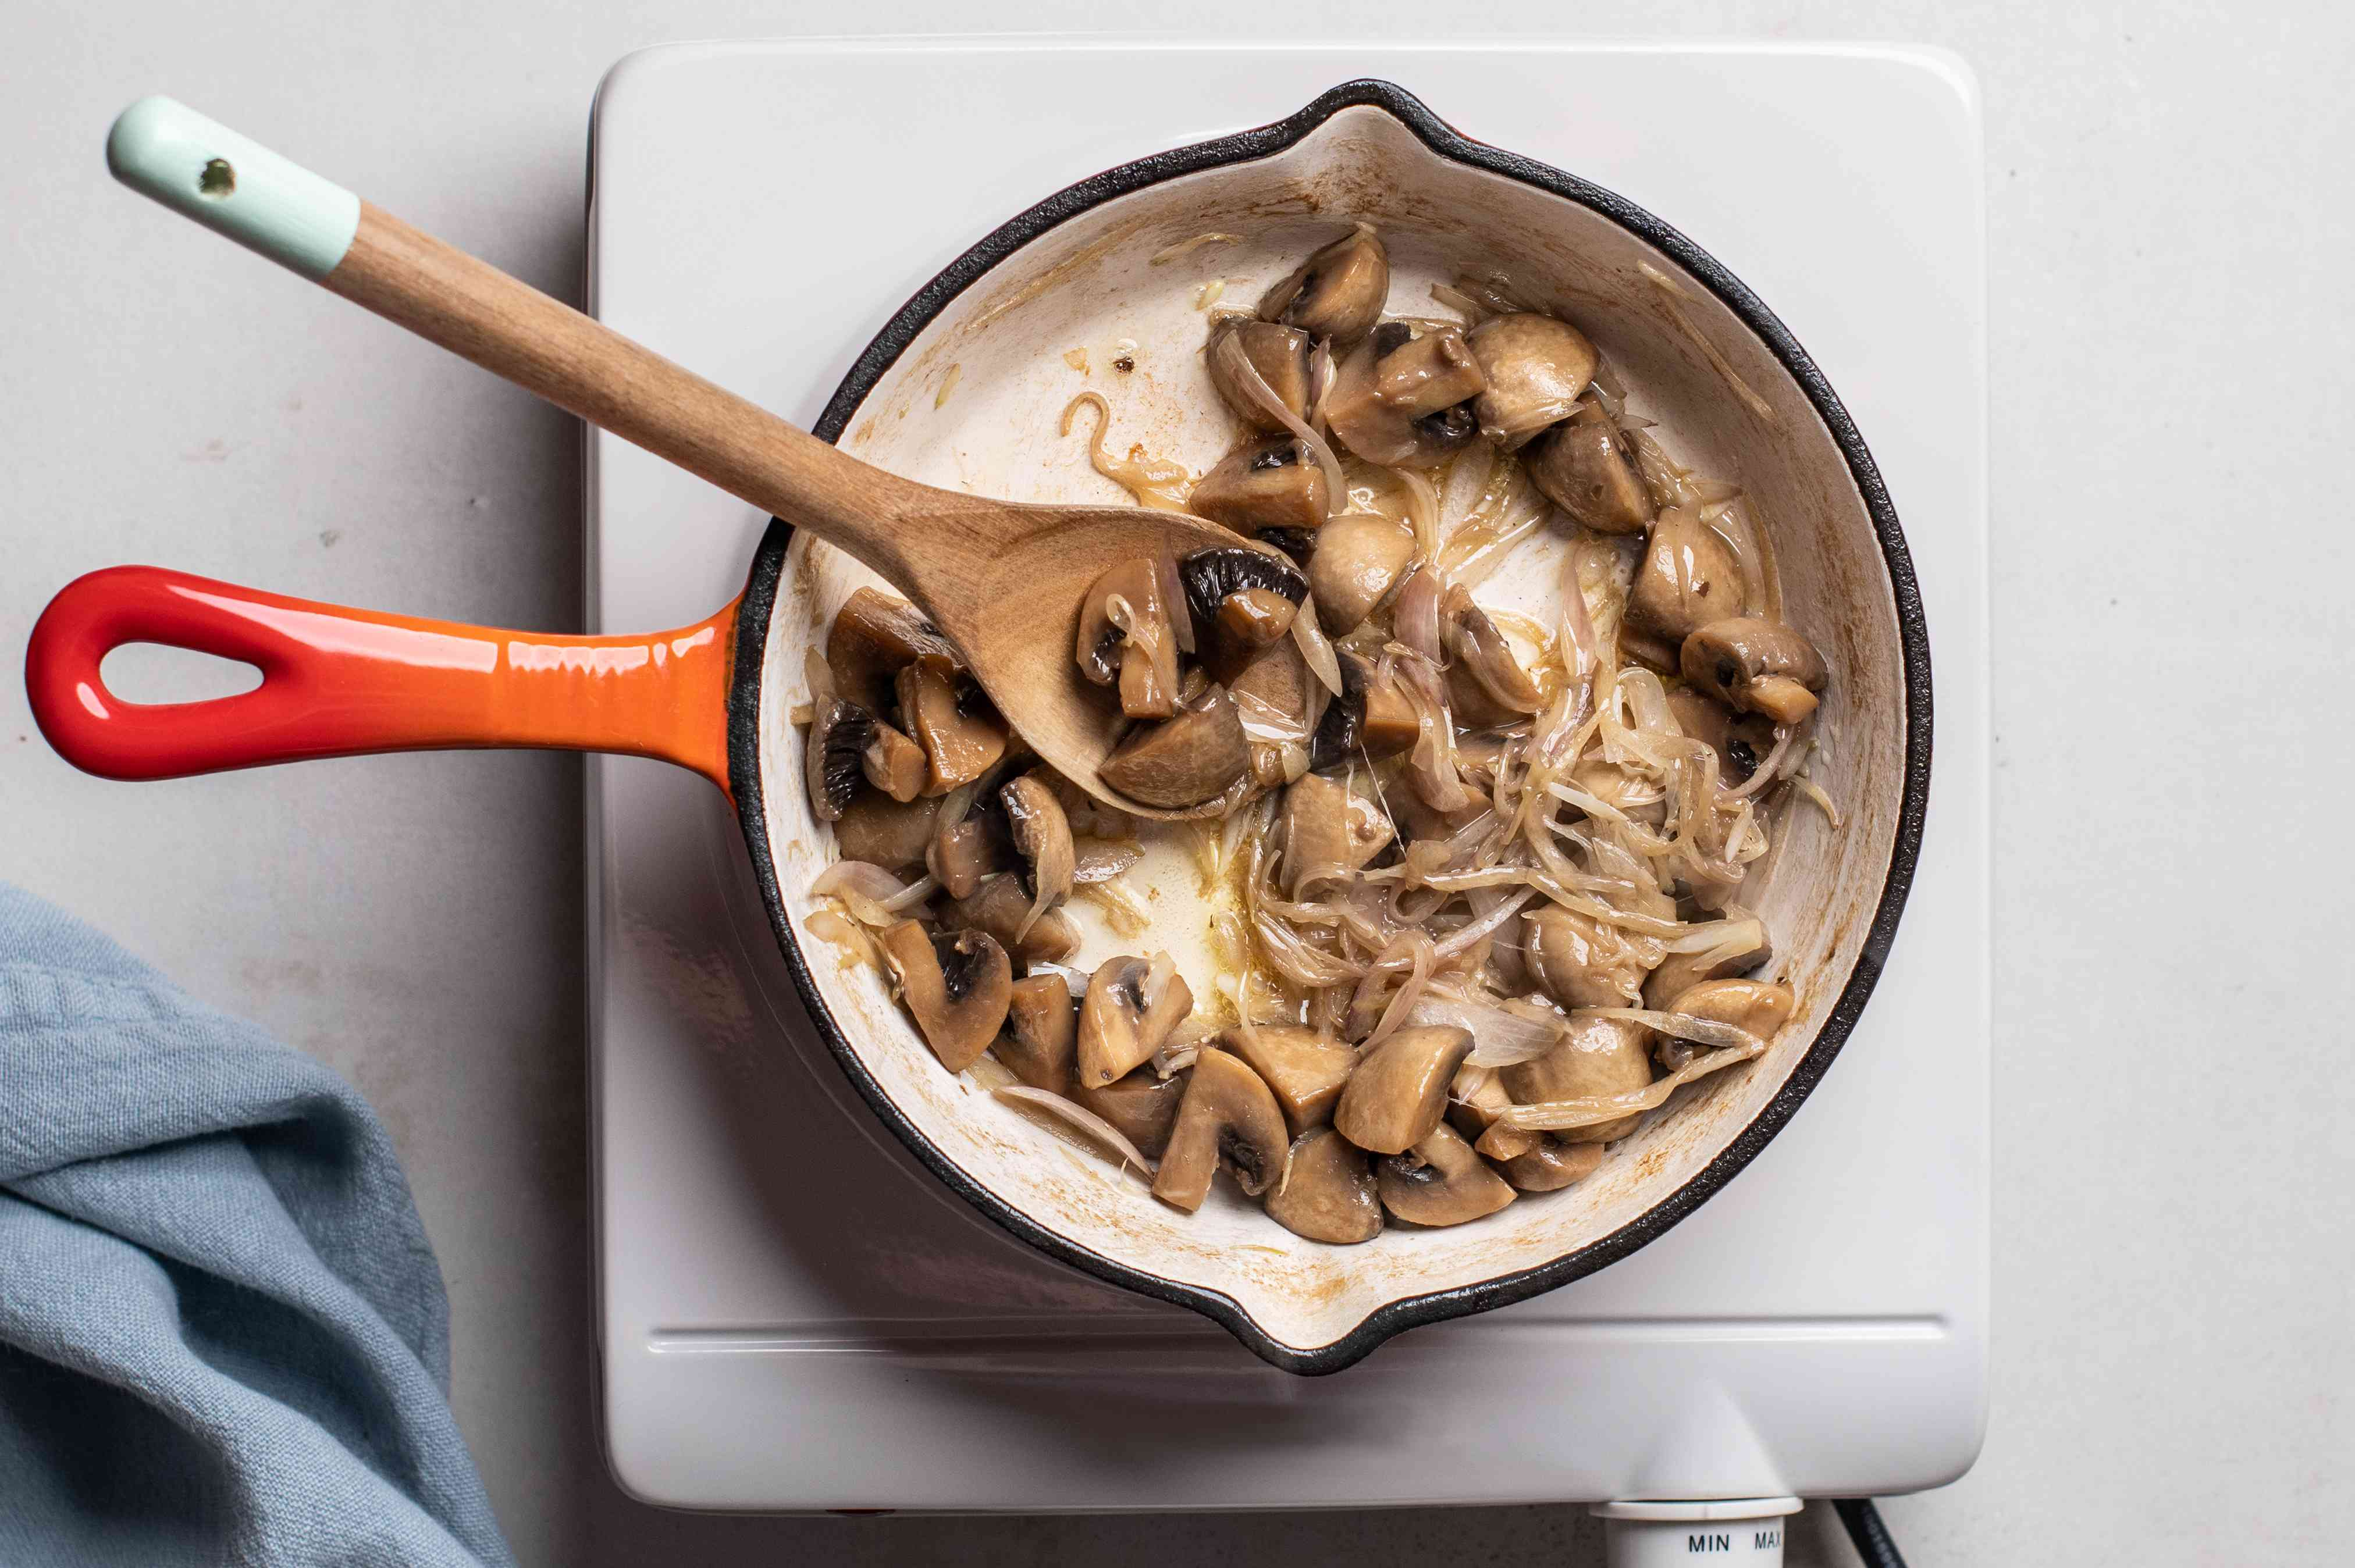 Shallot cooked with mushrooms